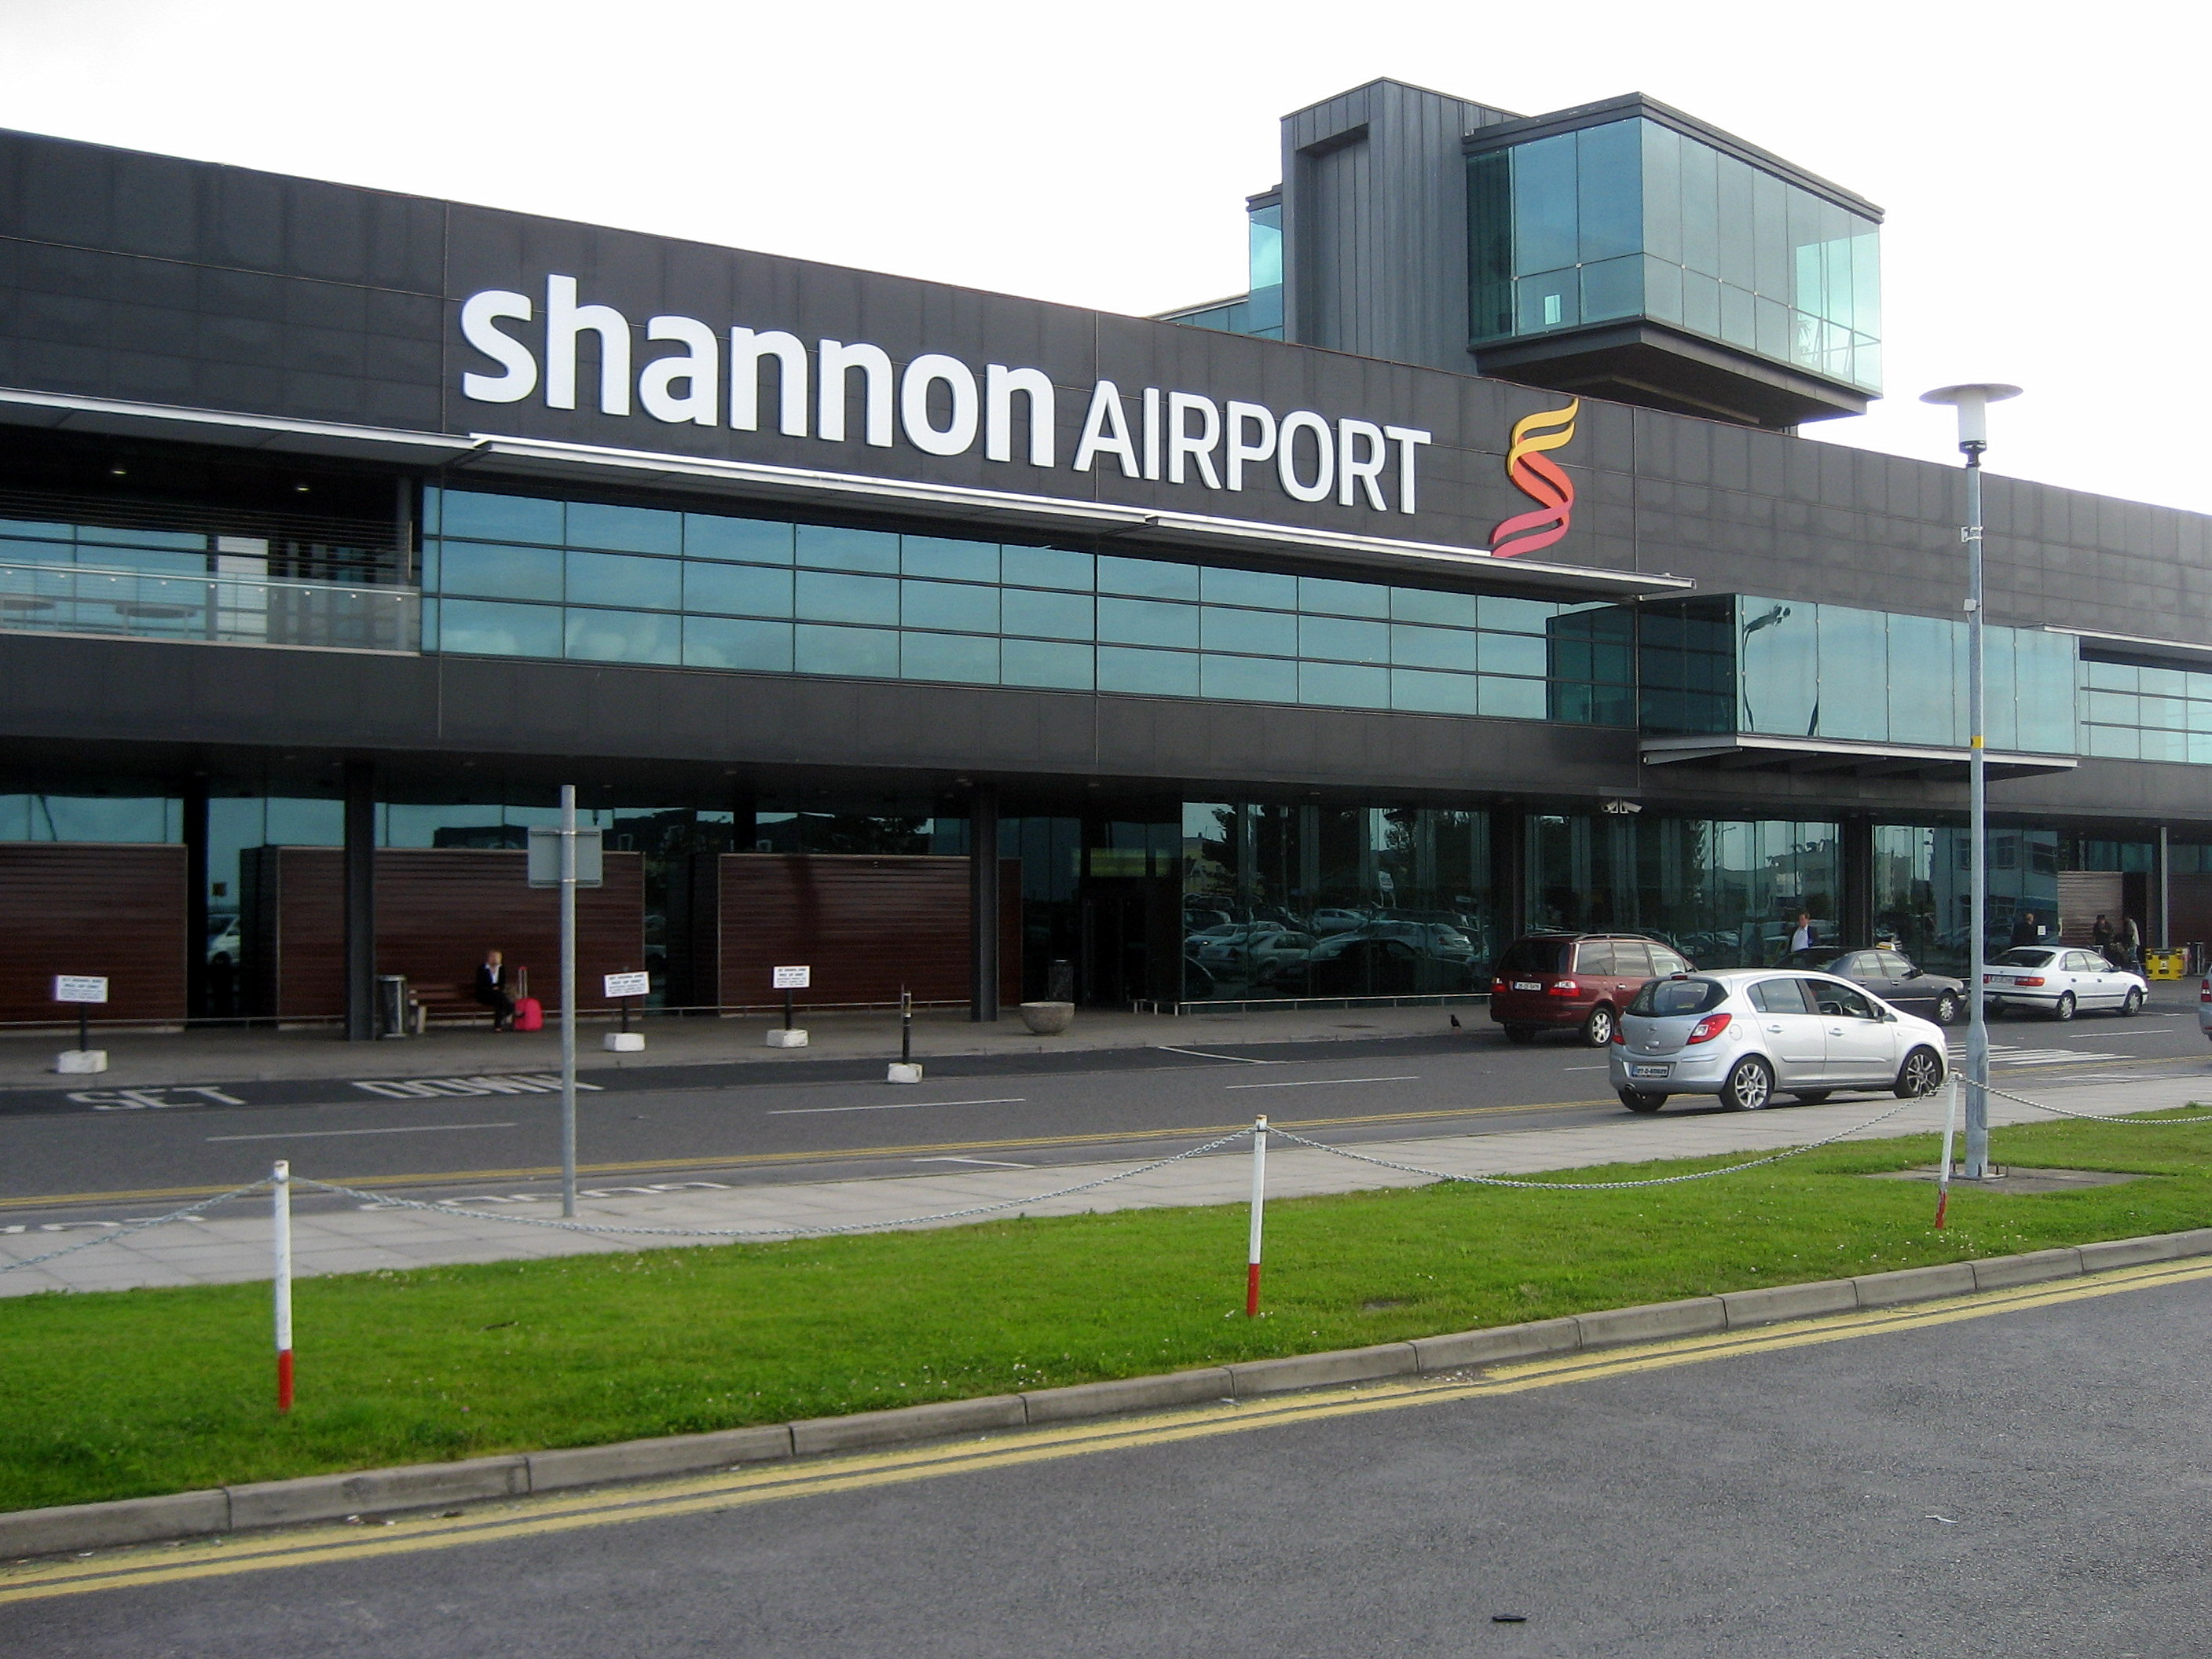 Bus - Shannon Airport